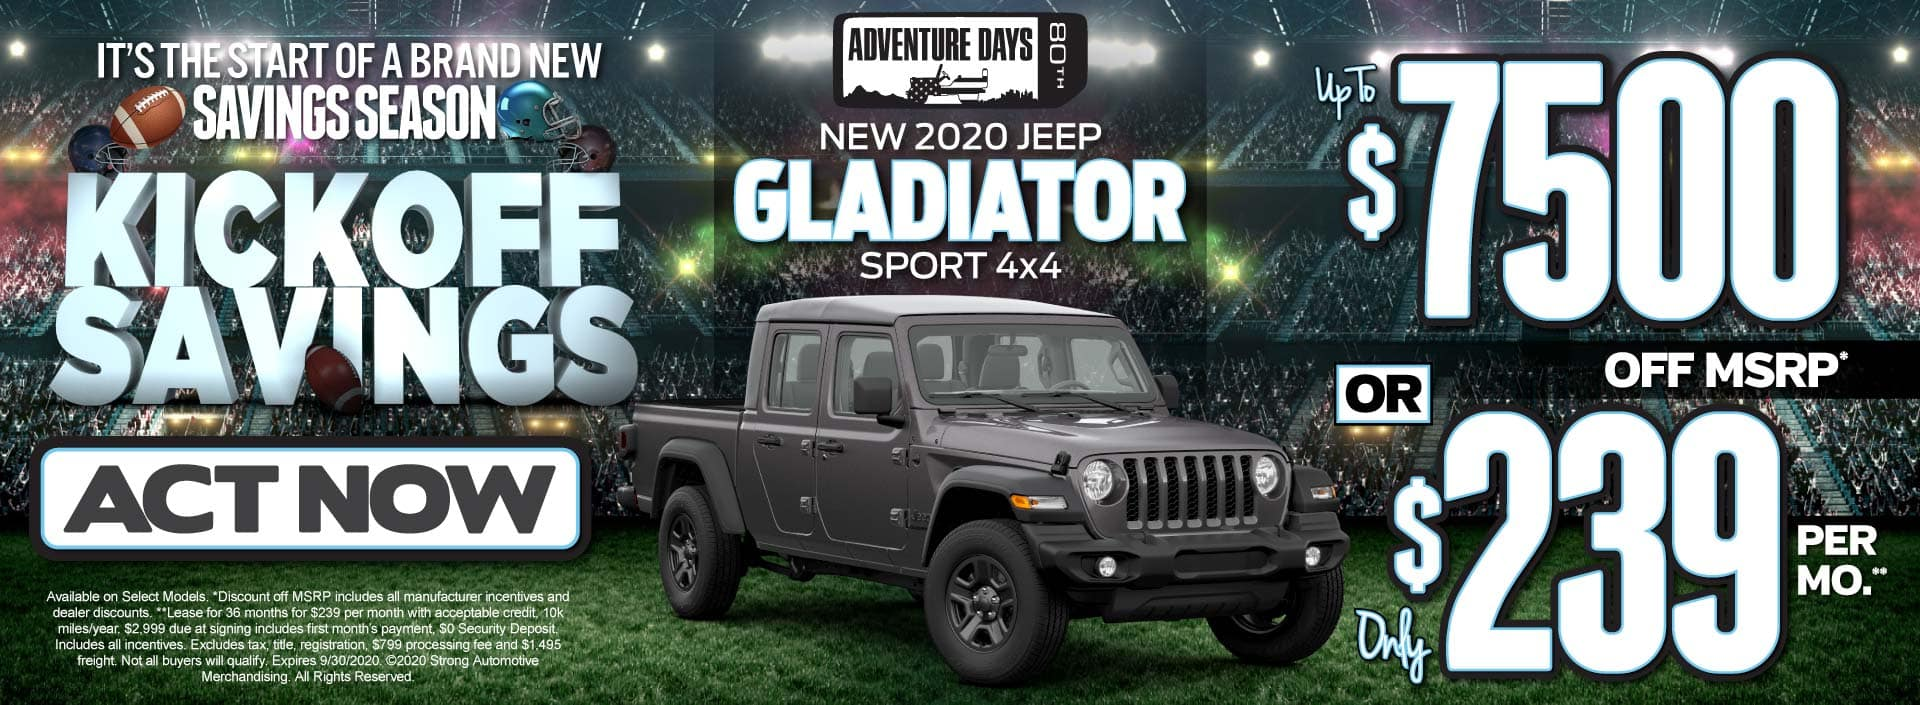 New 2020 Jeep Gladiator up to $7500 Off MSRP - ACT NOW